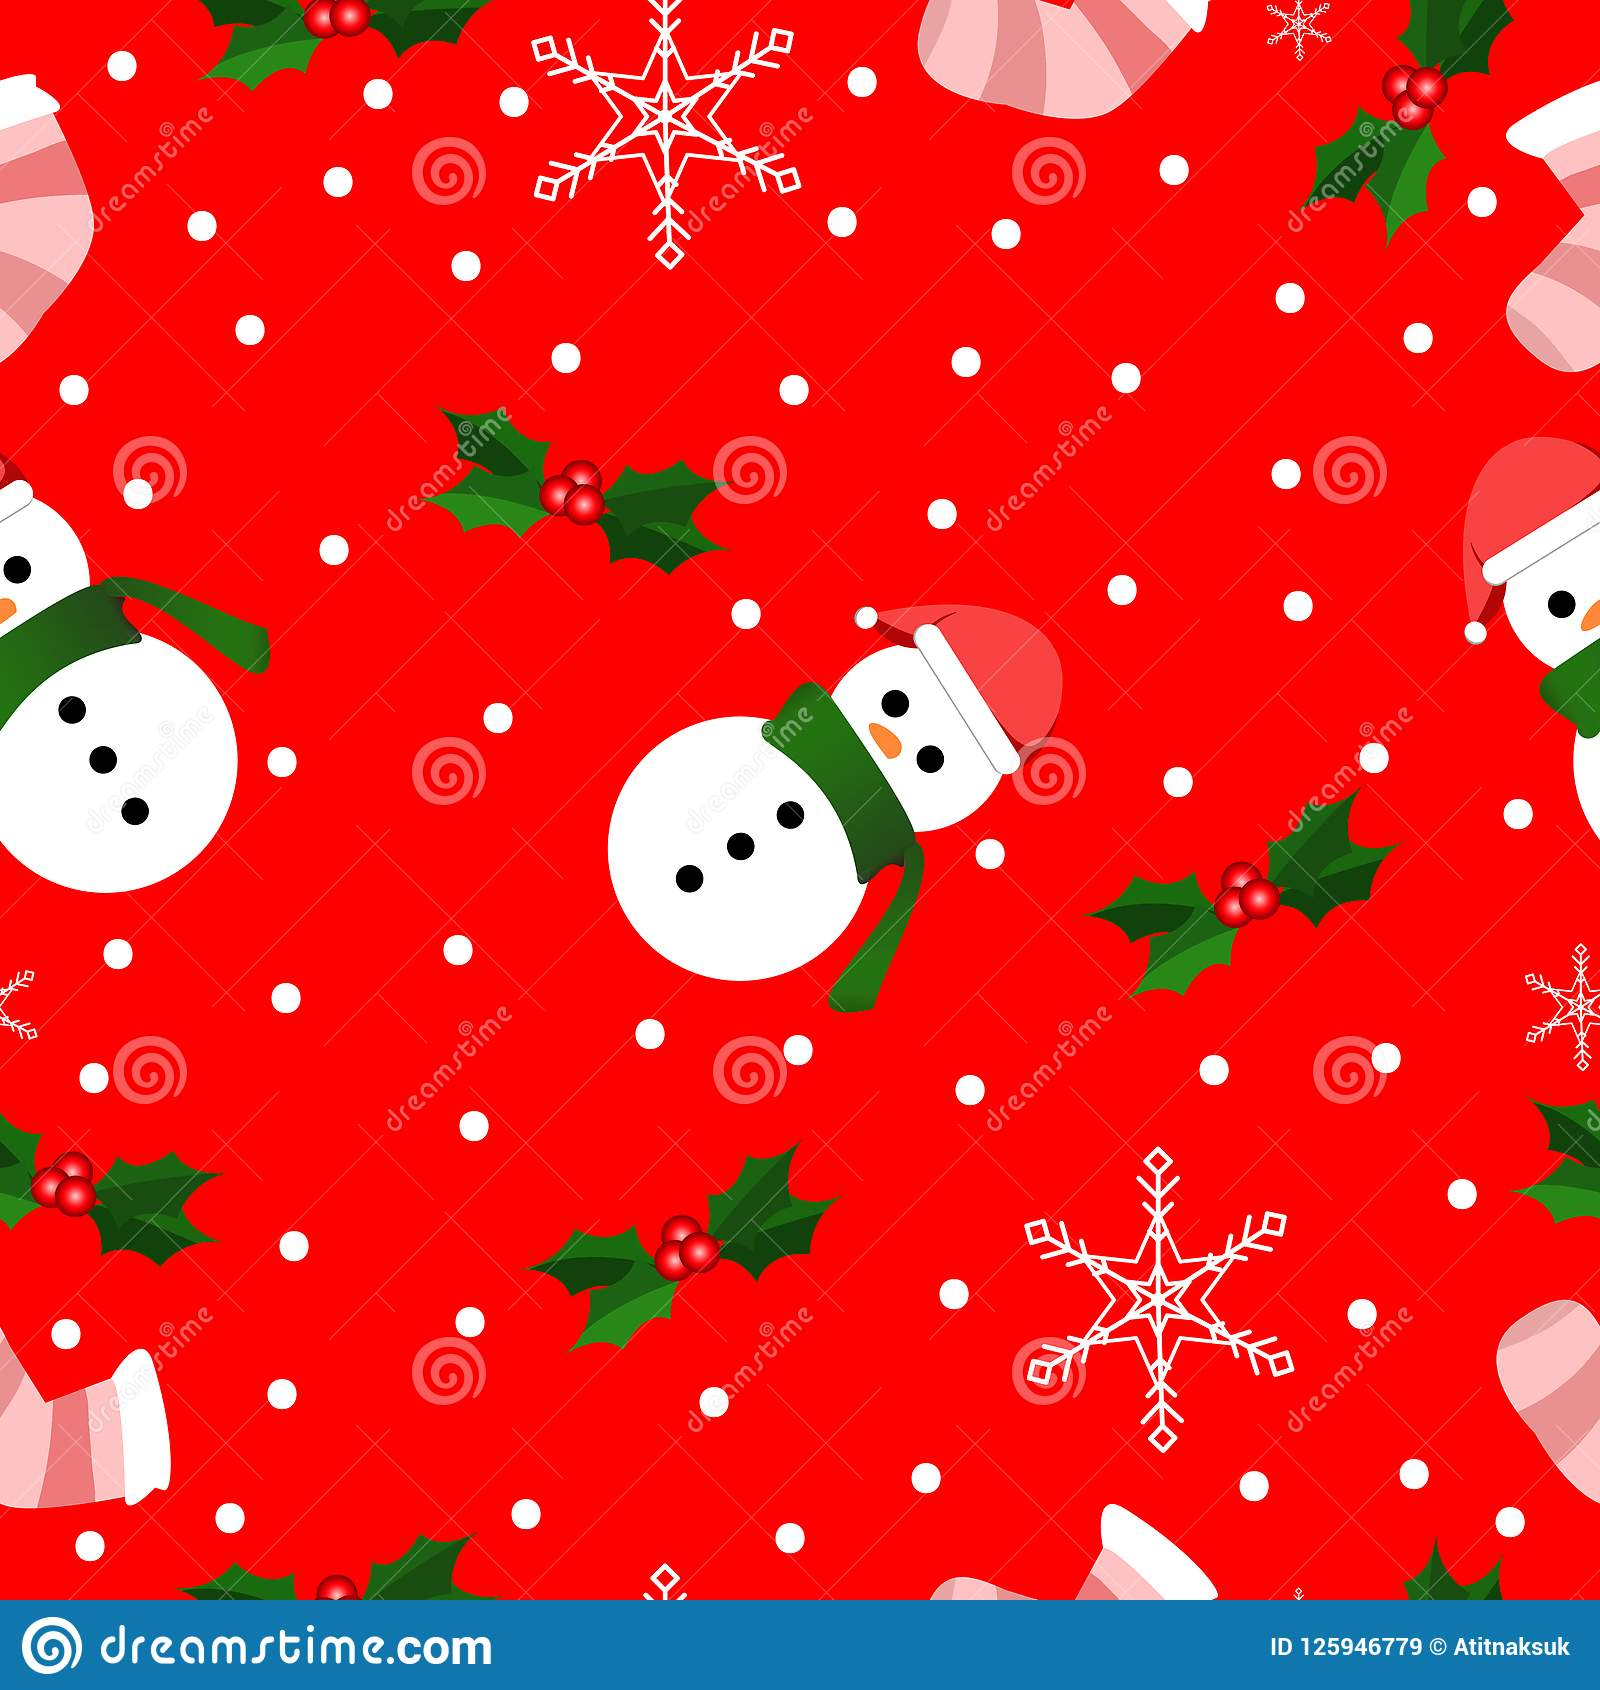 Christmas Texture.Christmas Texture Pattern Background Stock Vector